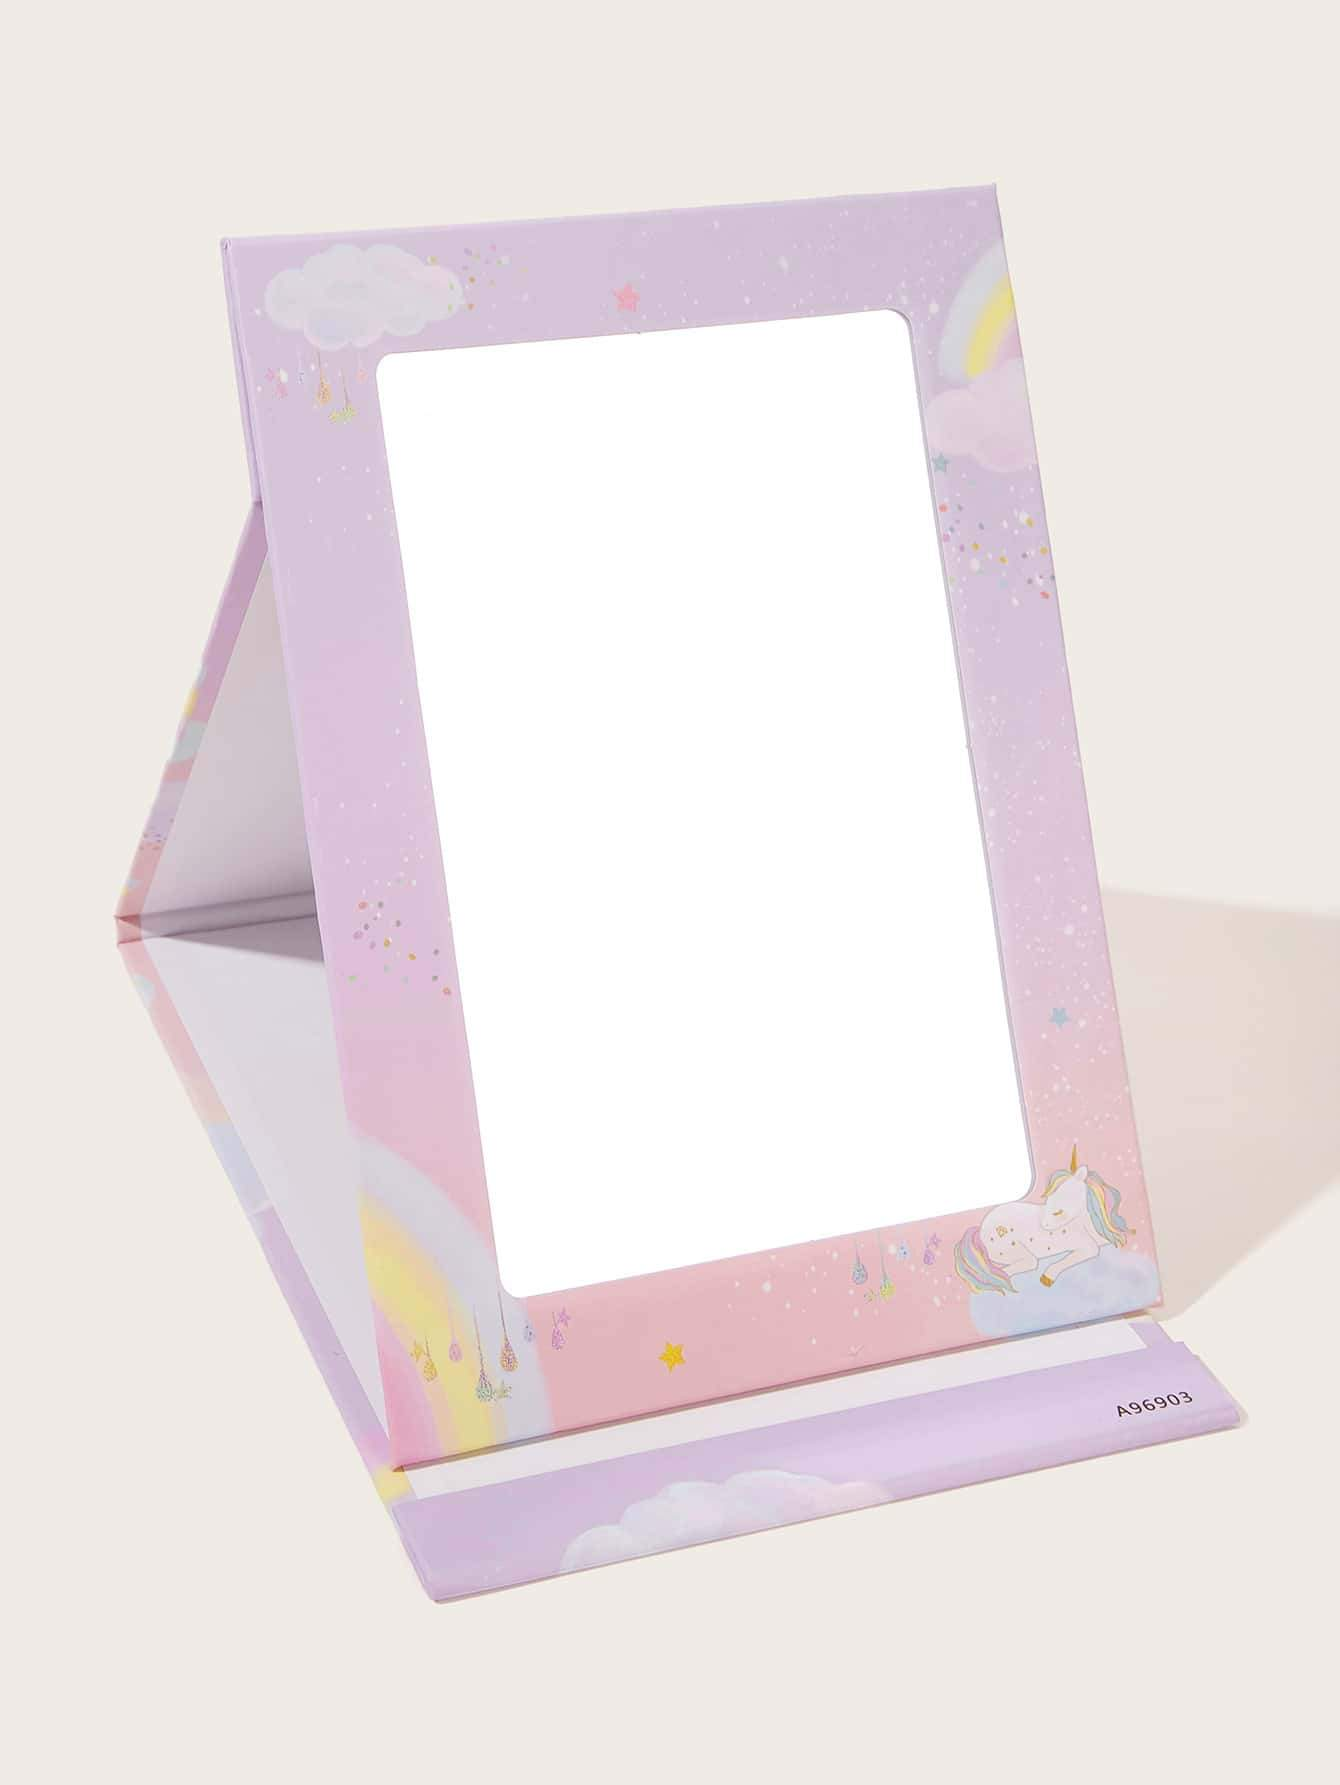 1pc Random Unicorn Pattern Folded Mirror